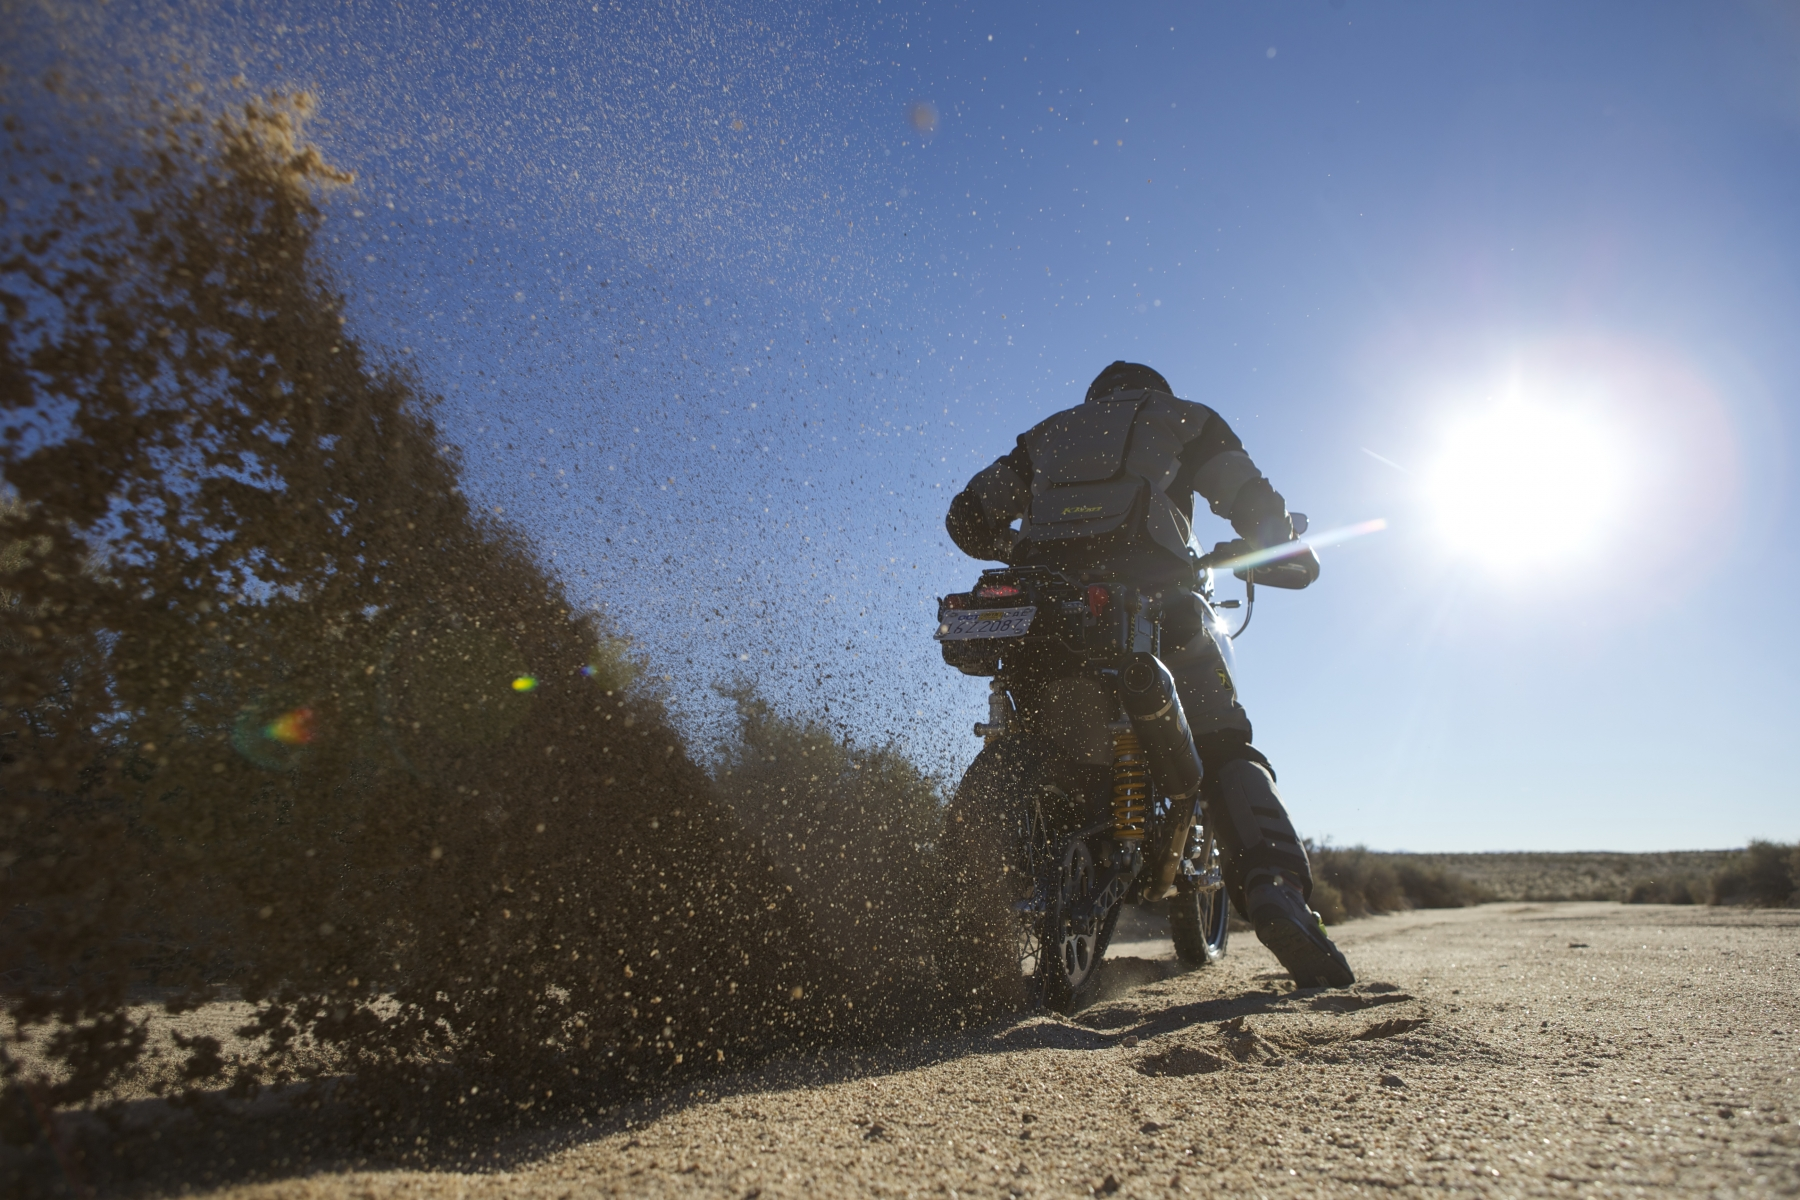 Jim Carducci riding in the sands of the Mojave Desert. Photo by Drew Ruiz for KLiM.